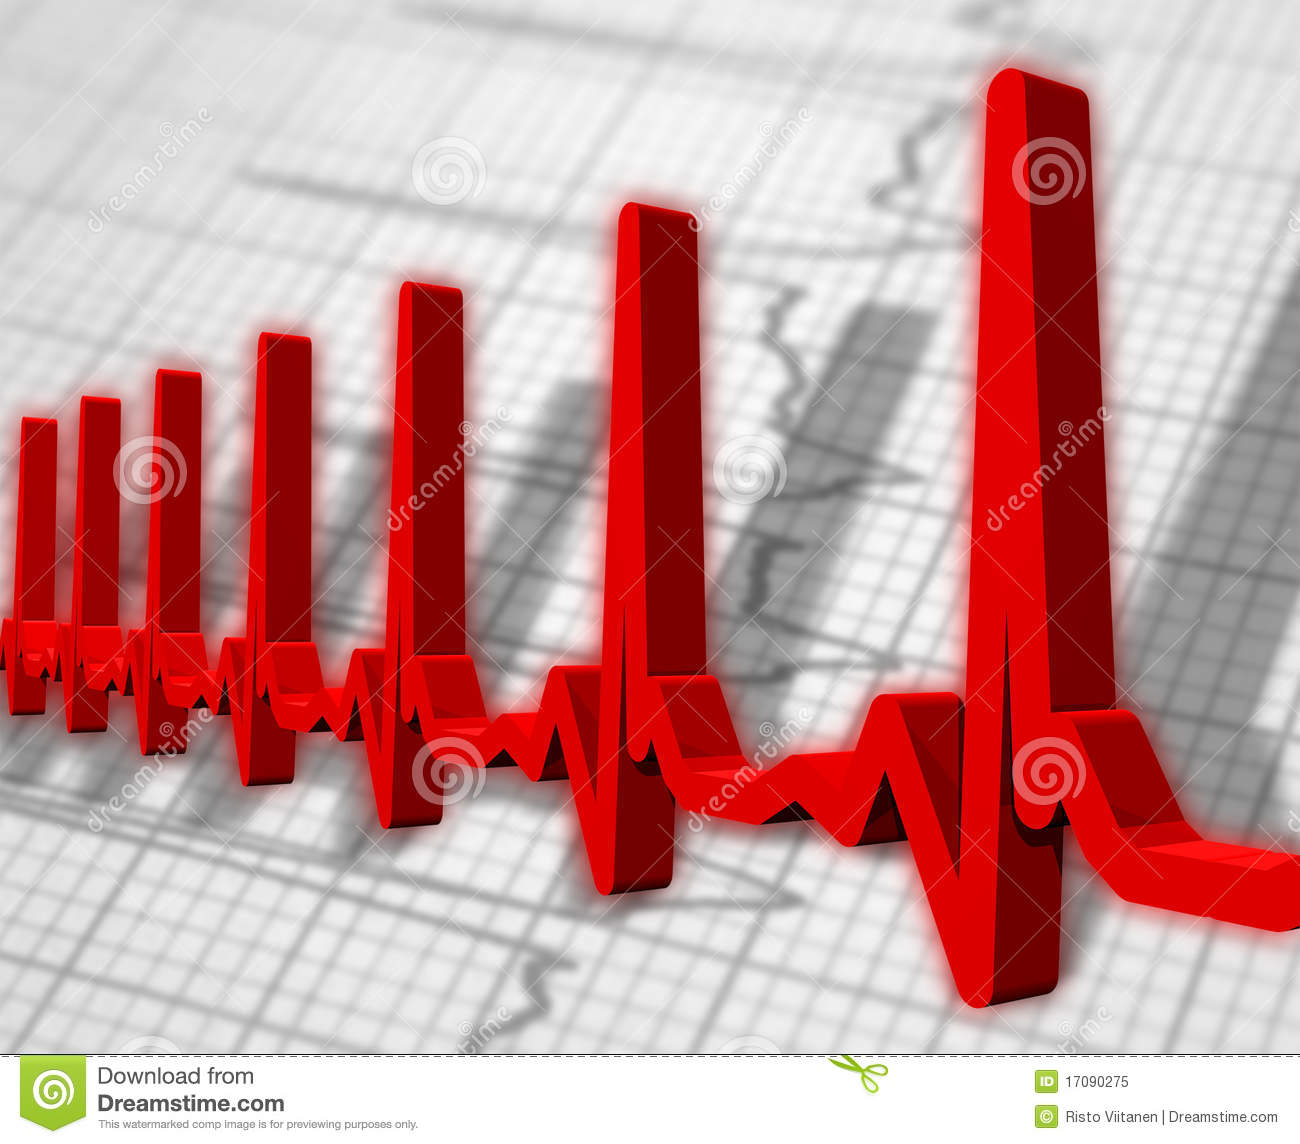 heart beat diagram clarion vz401 wiring ekg ecg pulse royalty free stock photo image